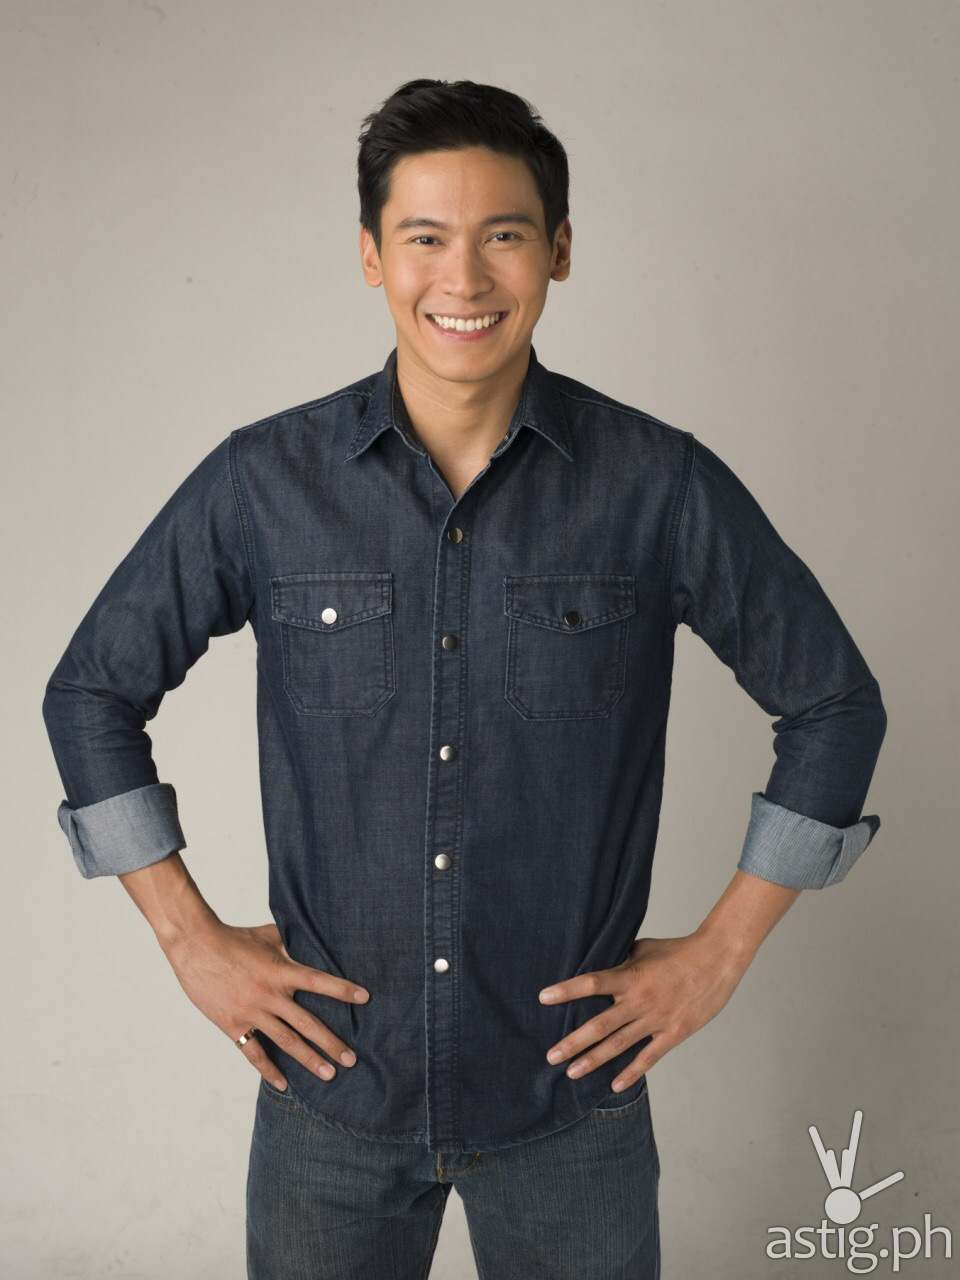 Actor Enchong Dee is the official endorser of Peri-Peri Charcoal Chicken and Sauce Bar. He is also a Peri Happy Franchisee of several Peri-Peri branches.